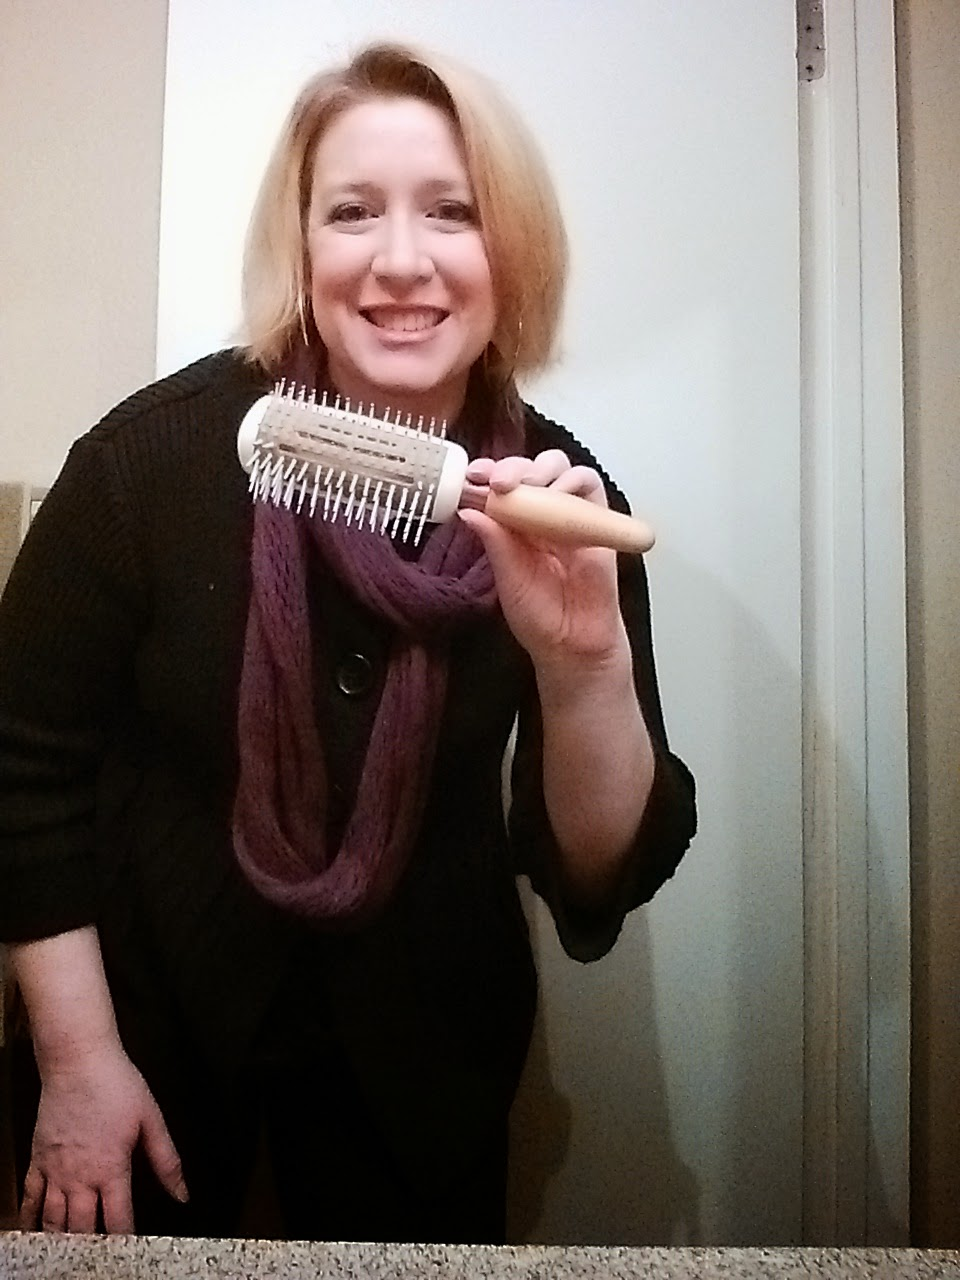 EcoTools Hair Brush #LoveMyEcoBrush